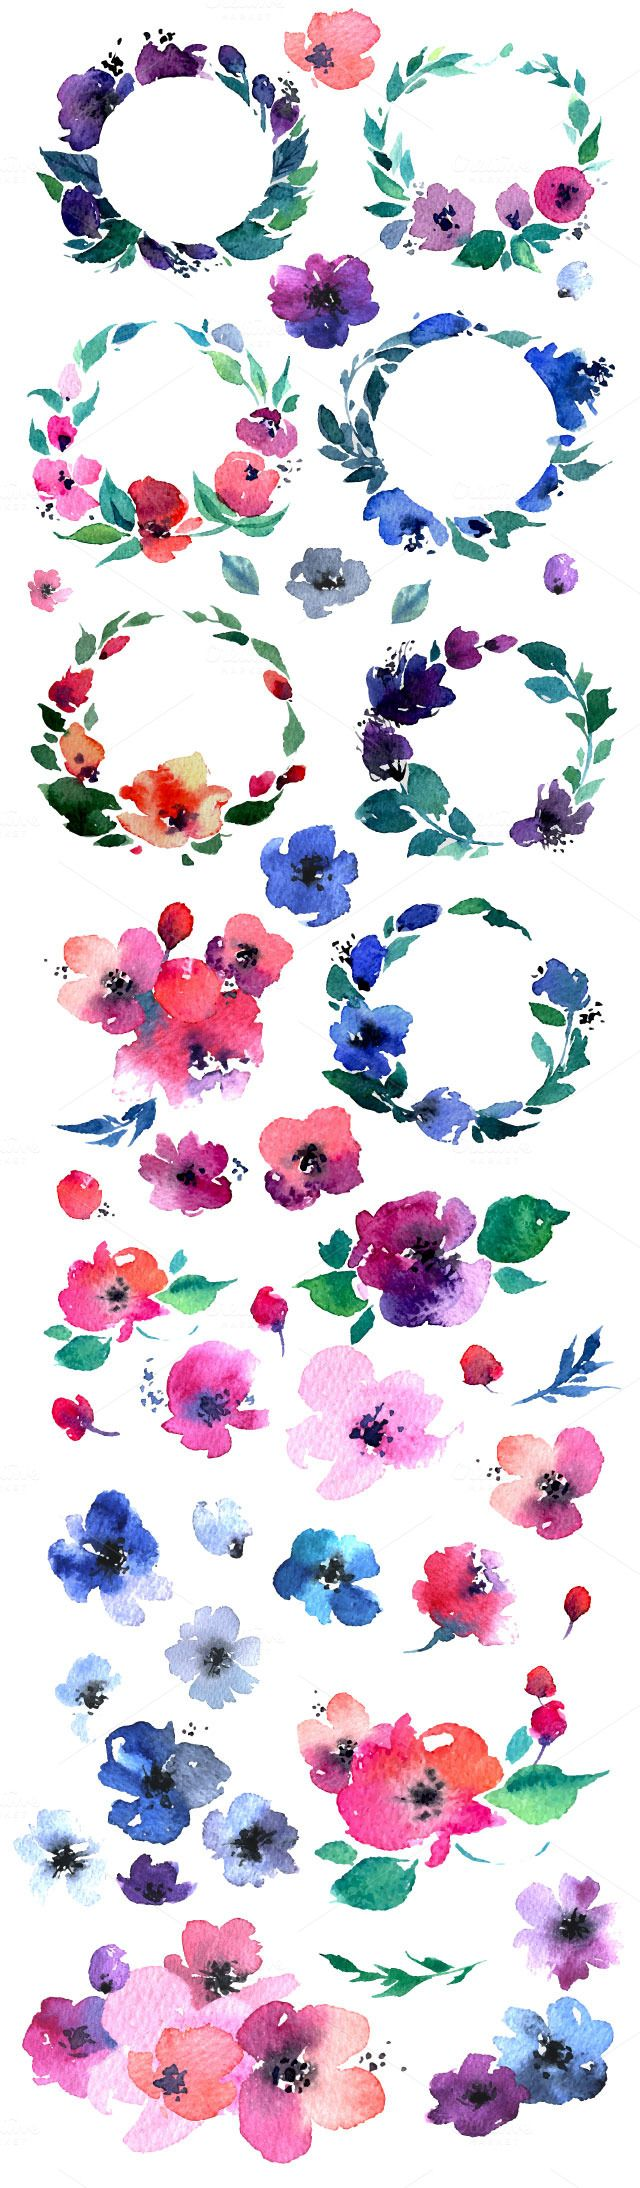 Vector Floral Collection of Painted - Illustrations - 3